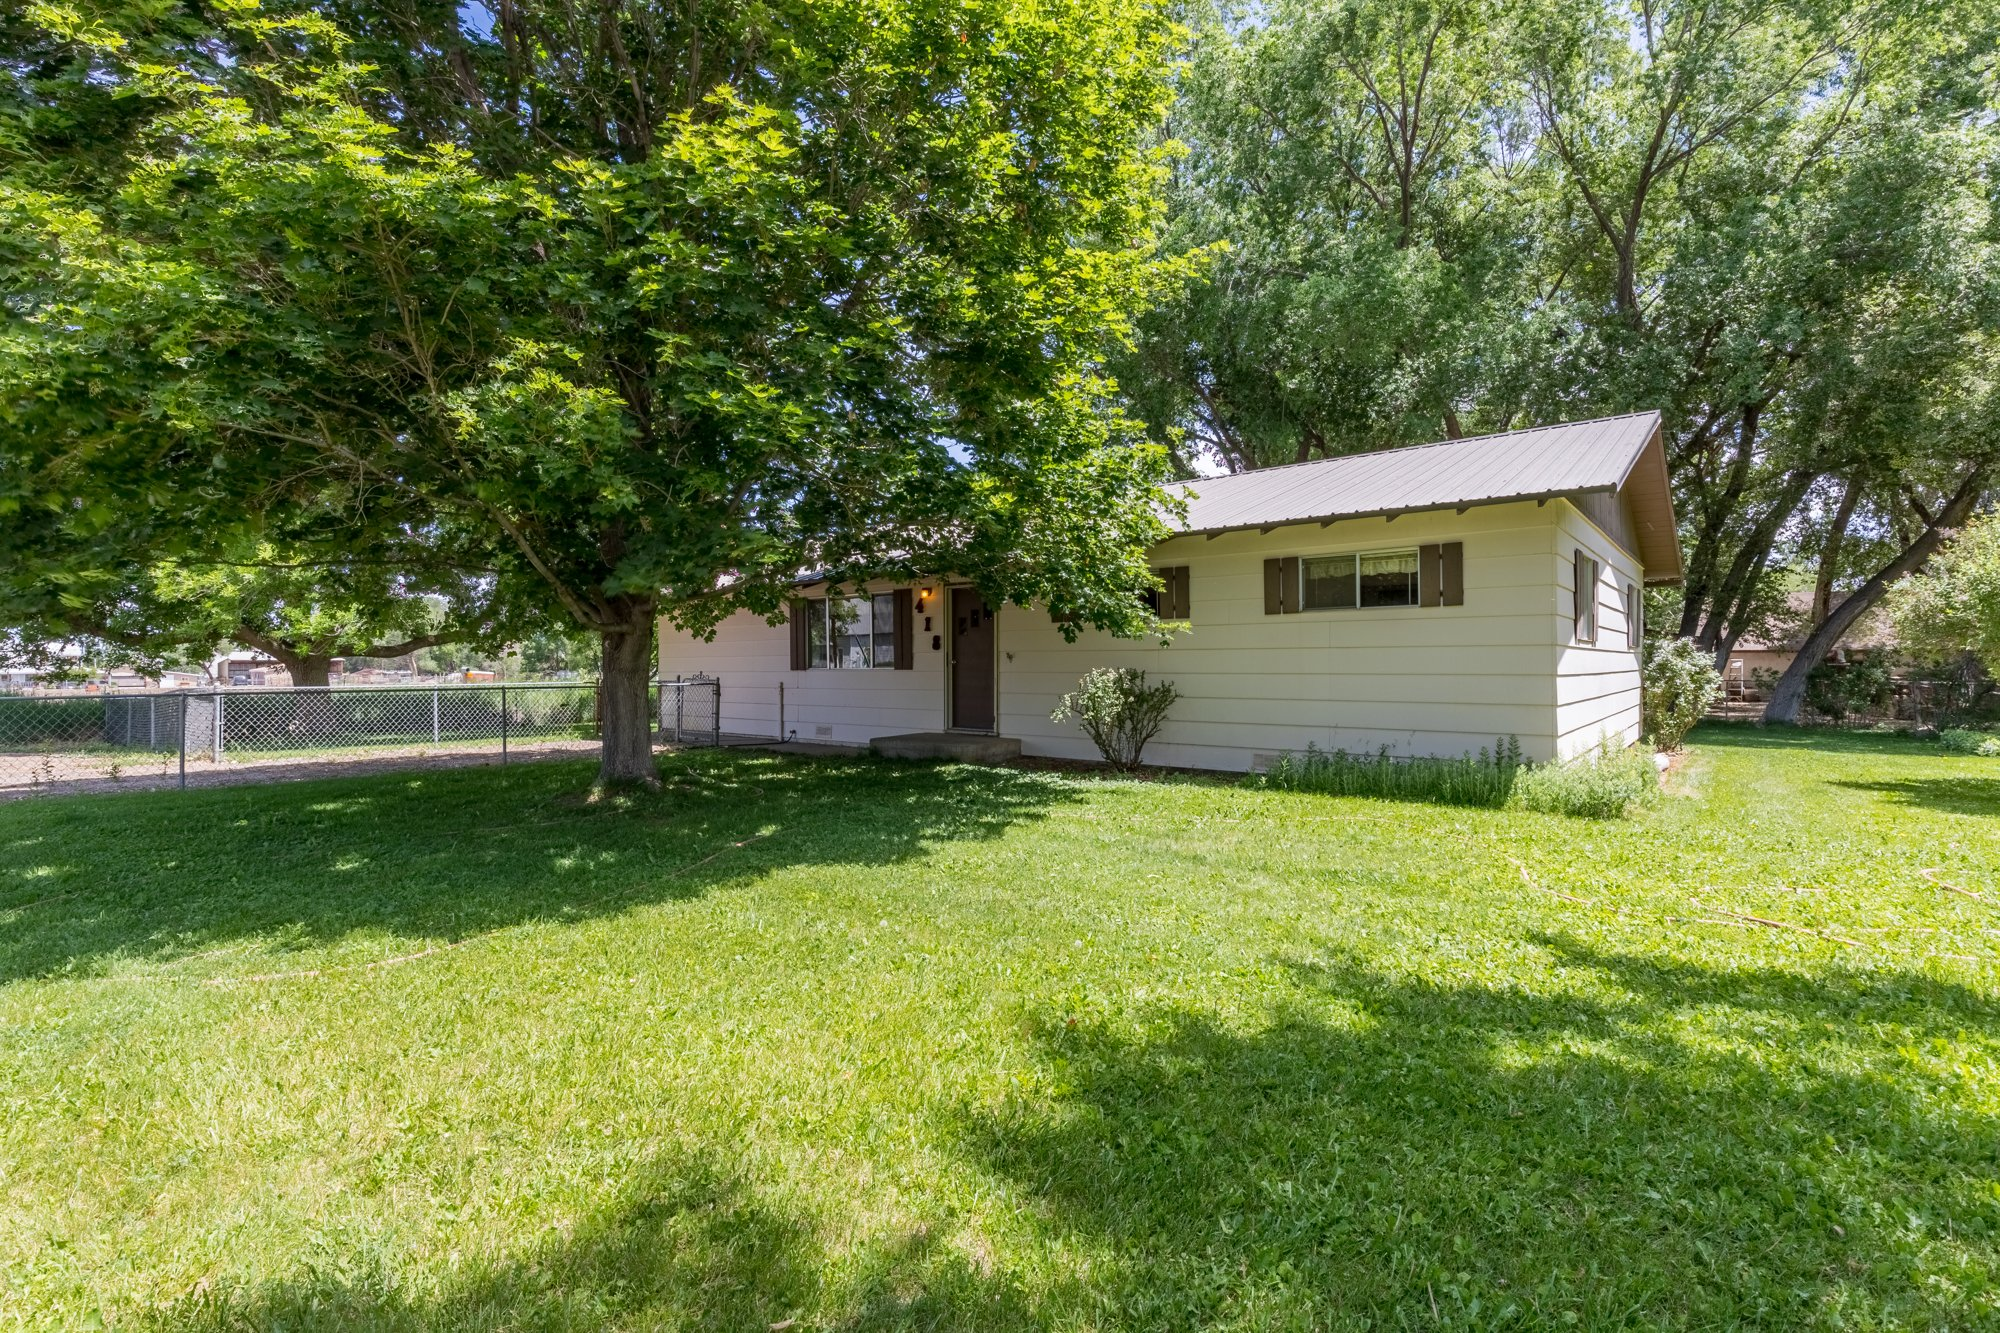 Home for Sale on Half-Acre - 418 6400 Rd Montrose, CO 81403 - Atha Team Realty